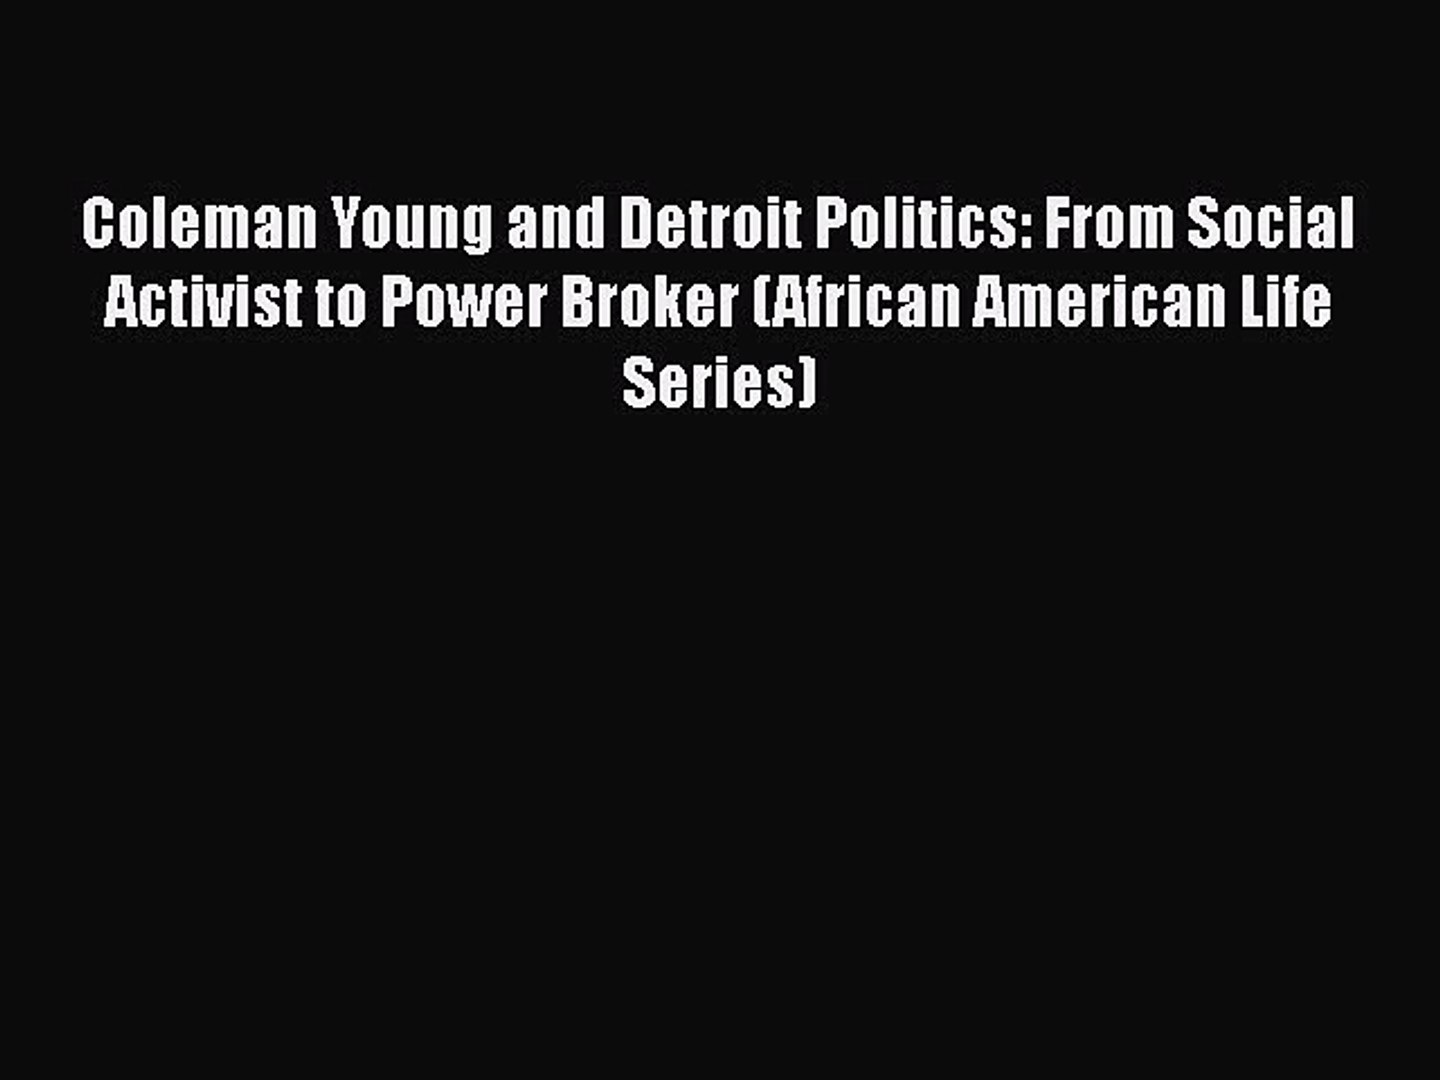 [Read book] Coleman Young and Detroit Politics: From Social Activist to Power Broker (African